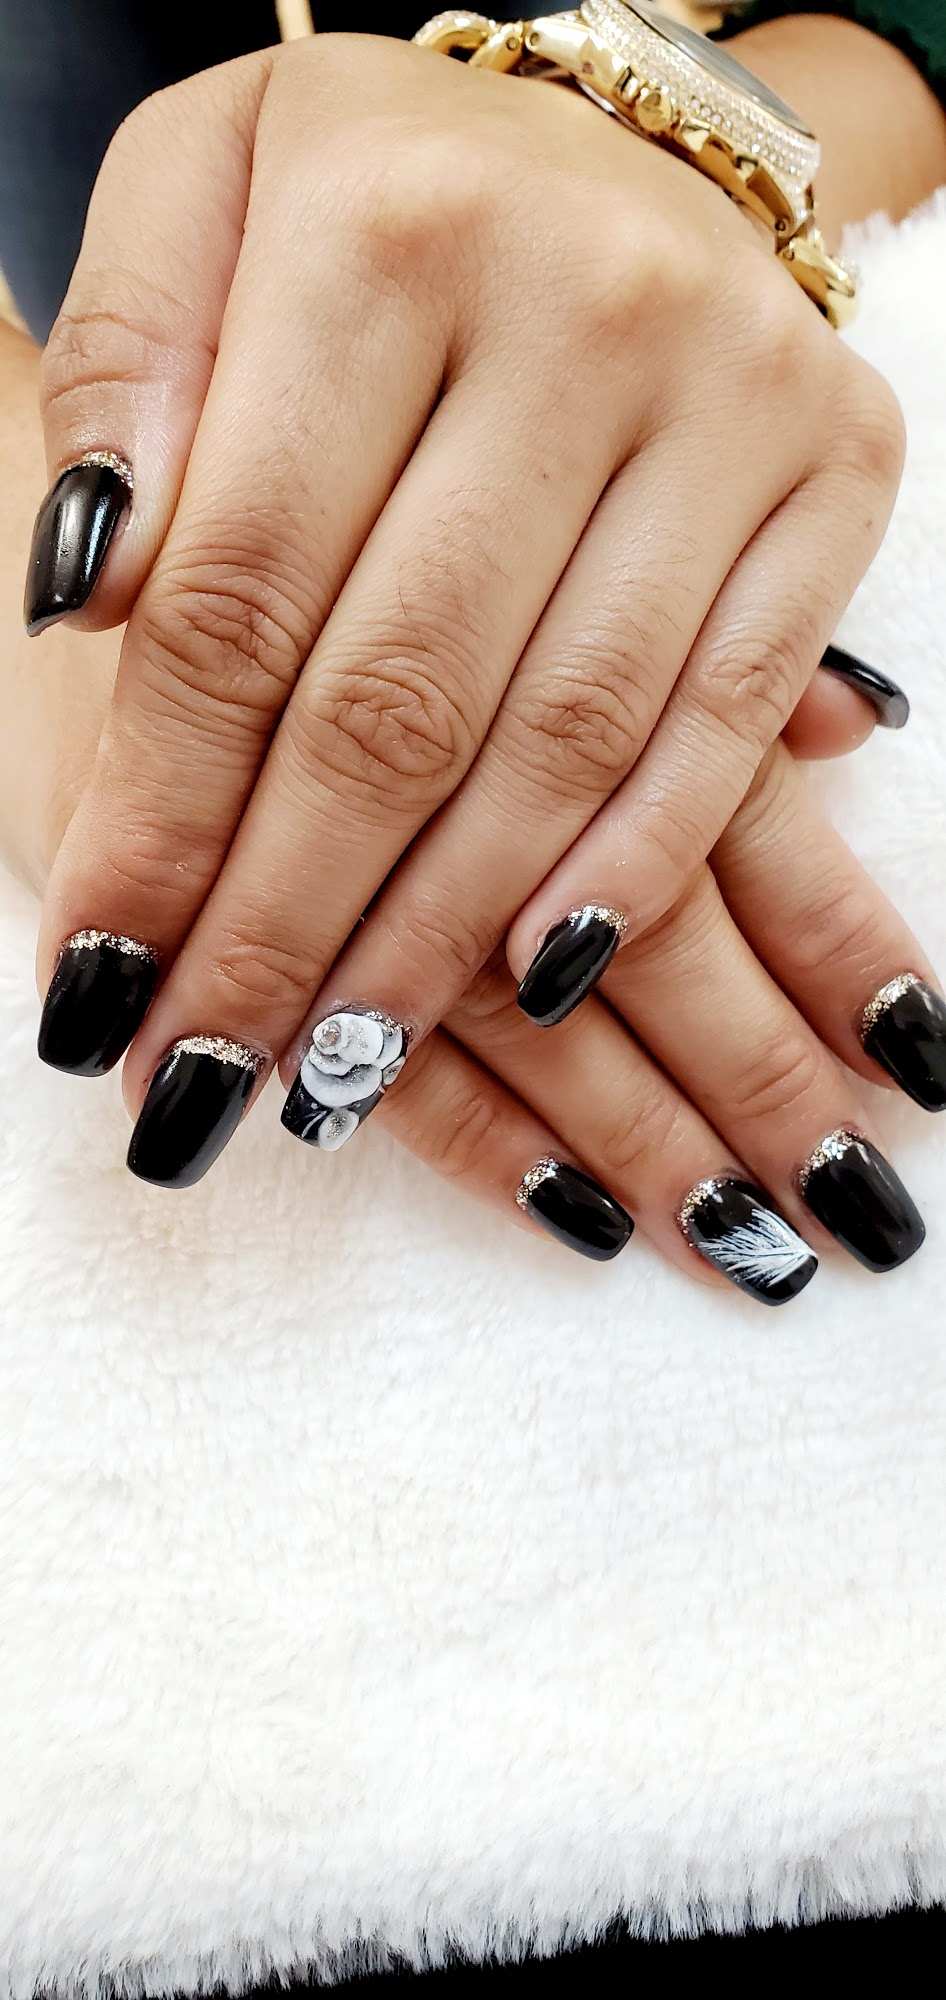 Coco's Nails Spa 225 Main St S, Newmarket